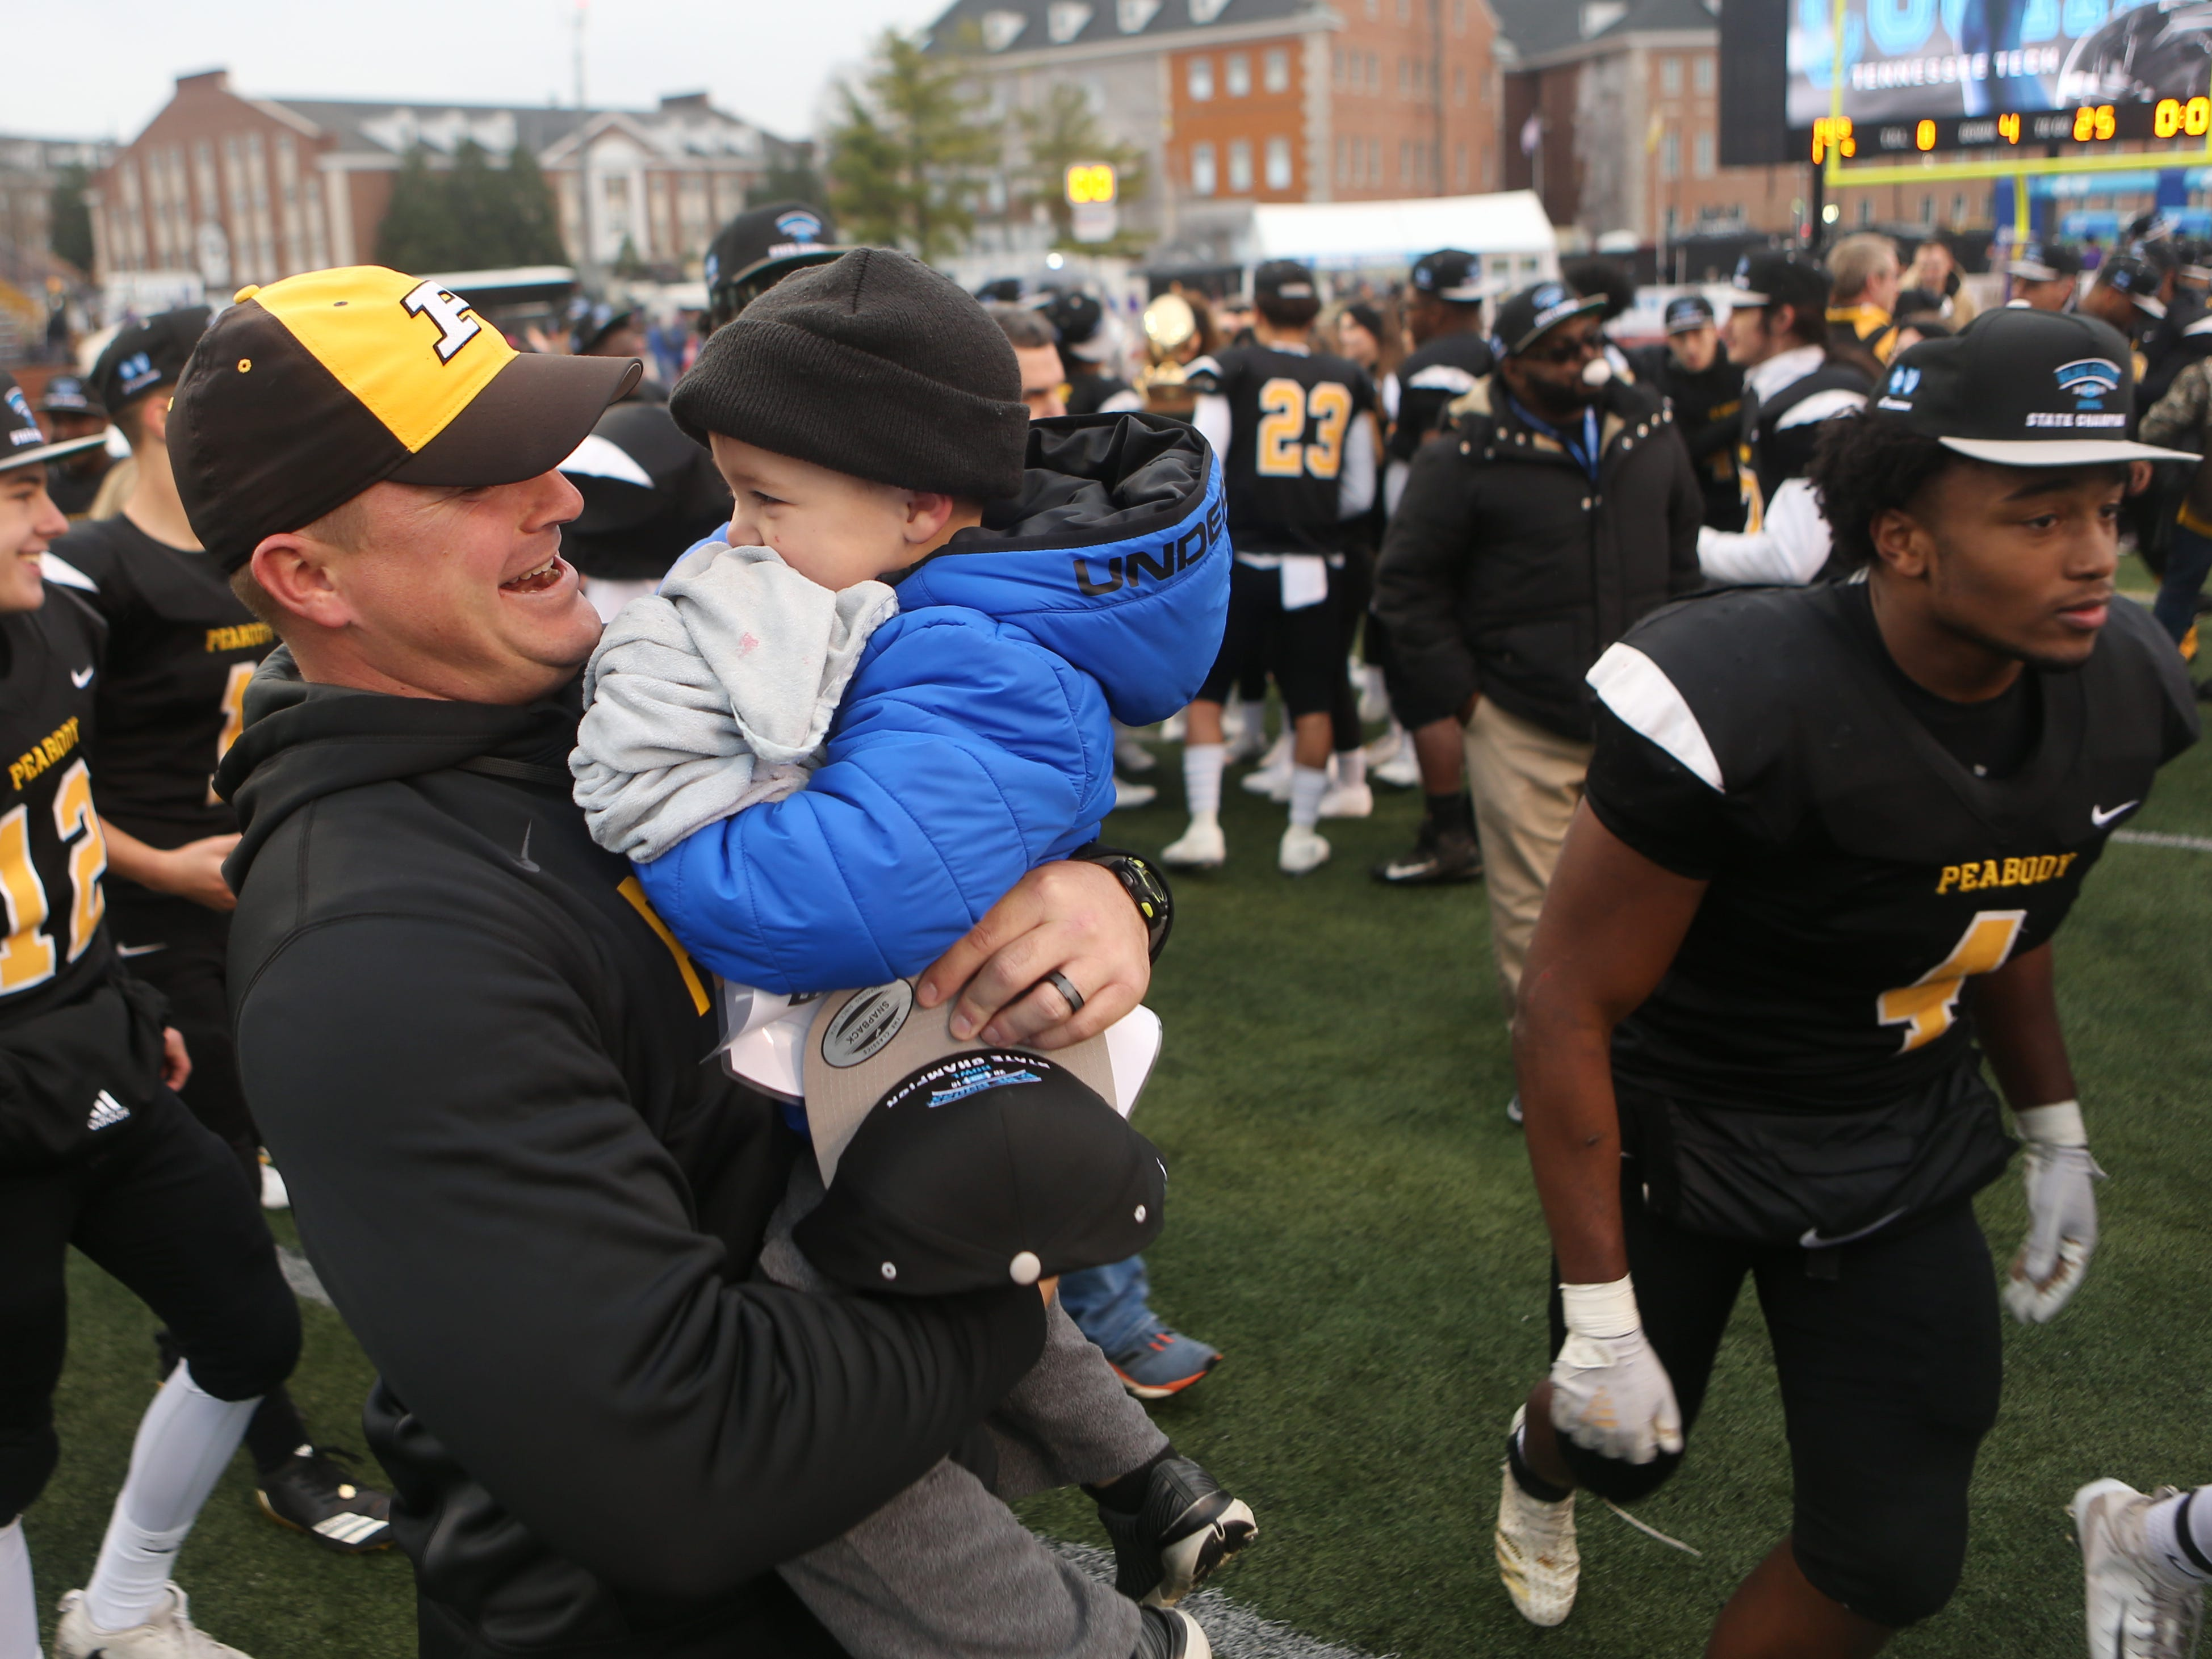 Peabody's head coach Shane Jacobs hugs his son Nolan after his team's win over Trousdale County in the Class 2A BlueCross Bowl state championship at Tennessee Tech's Tucker Stadium in Cookeville, Tenn., on Thursday, Nov. 29, 2018.